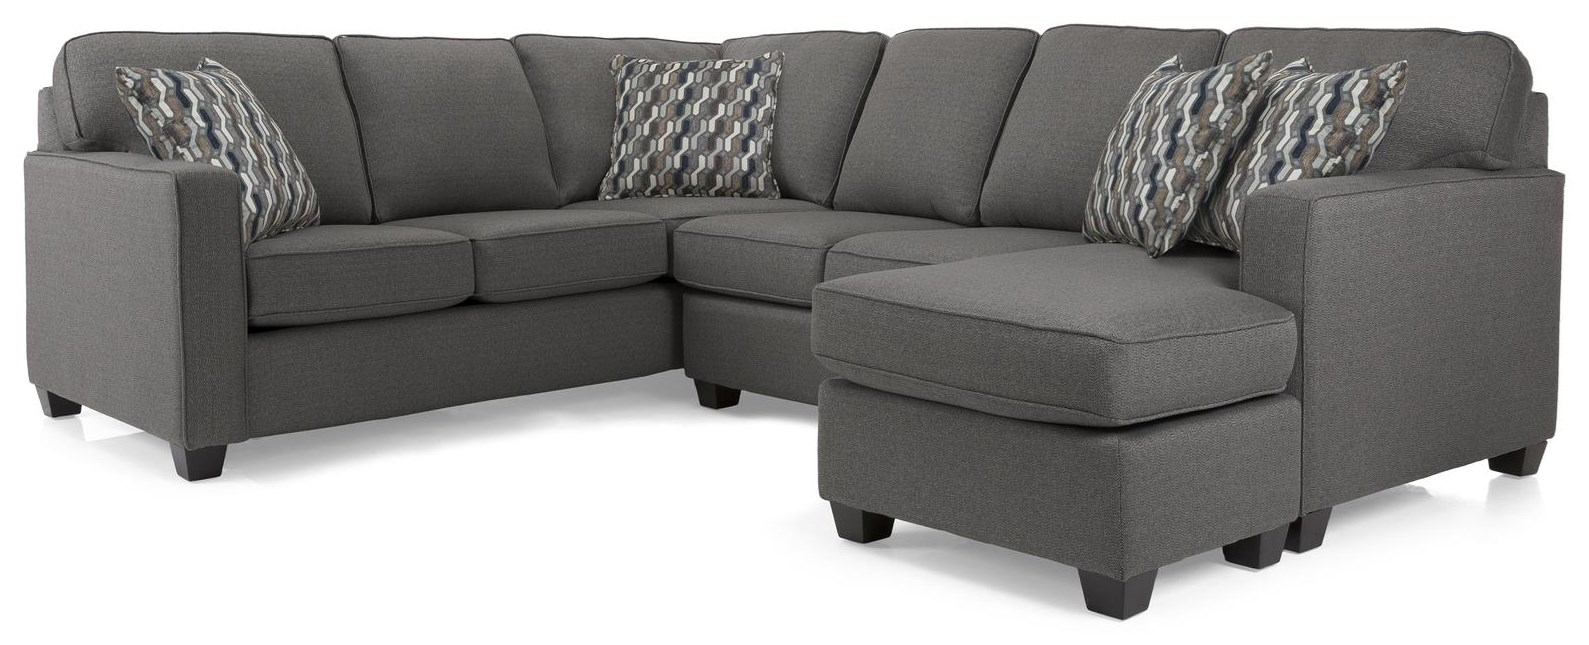 2541 Rico Grey Sectional by Decor-Rest at Stoney Creek Furniture